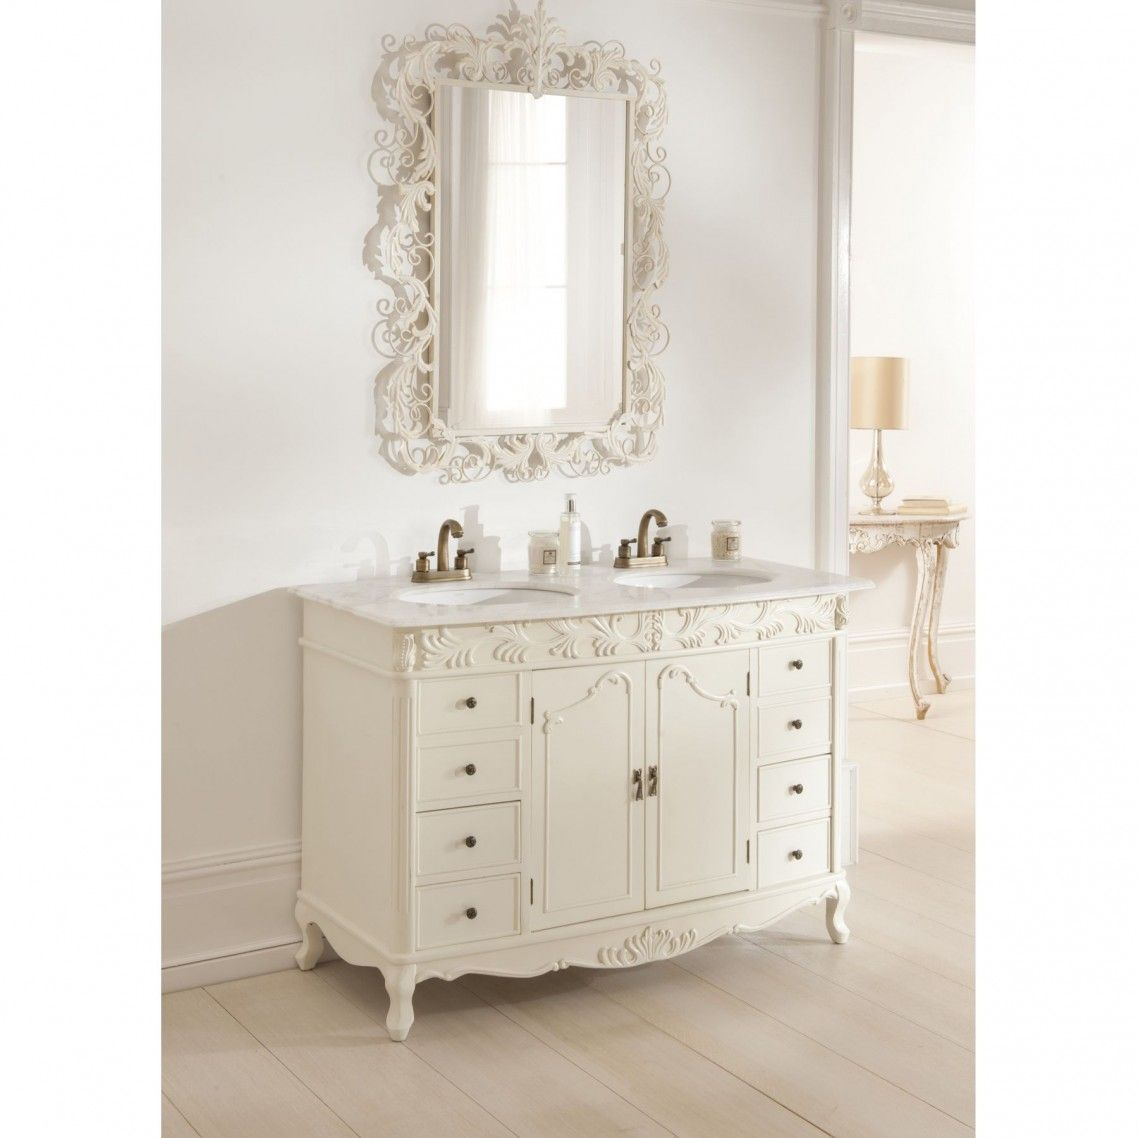 Double Vanity Mirror Double Antique White French Vanity Vanity